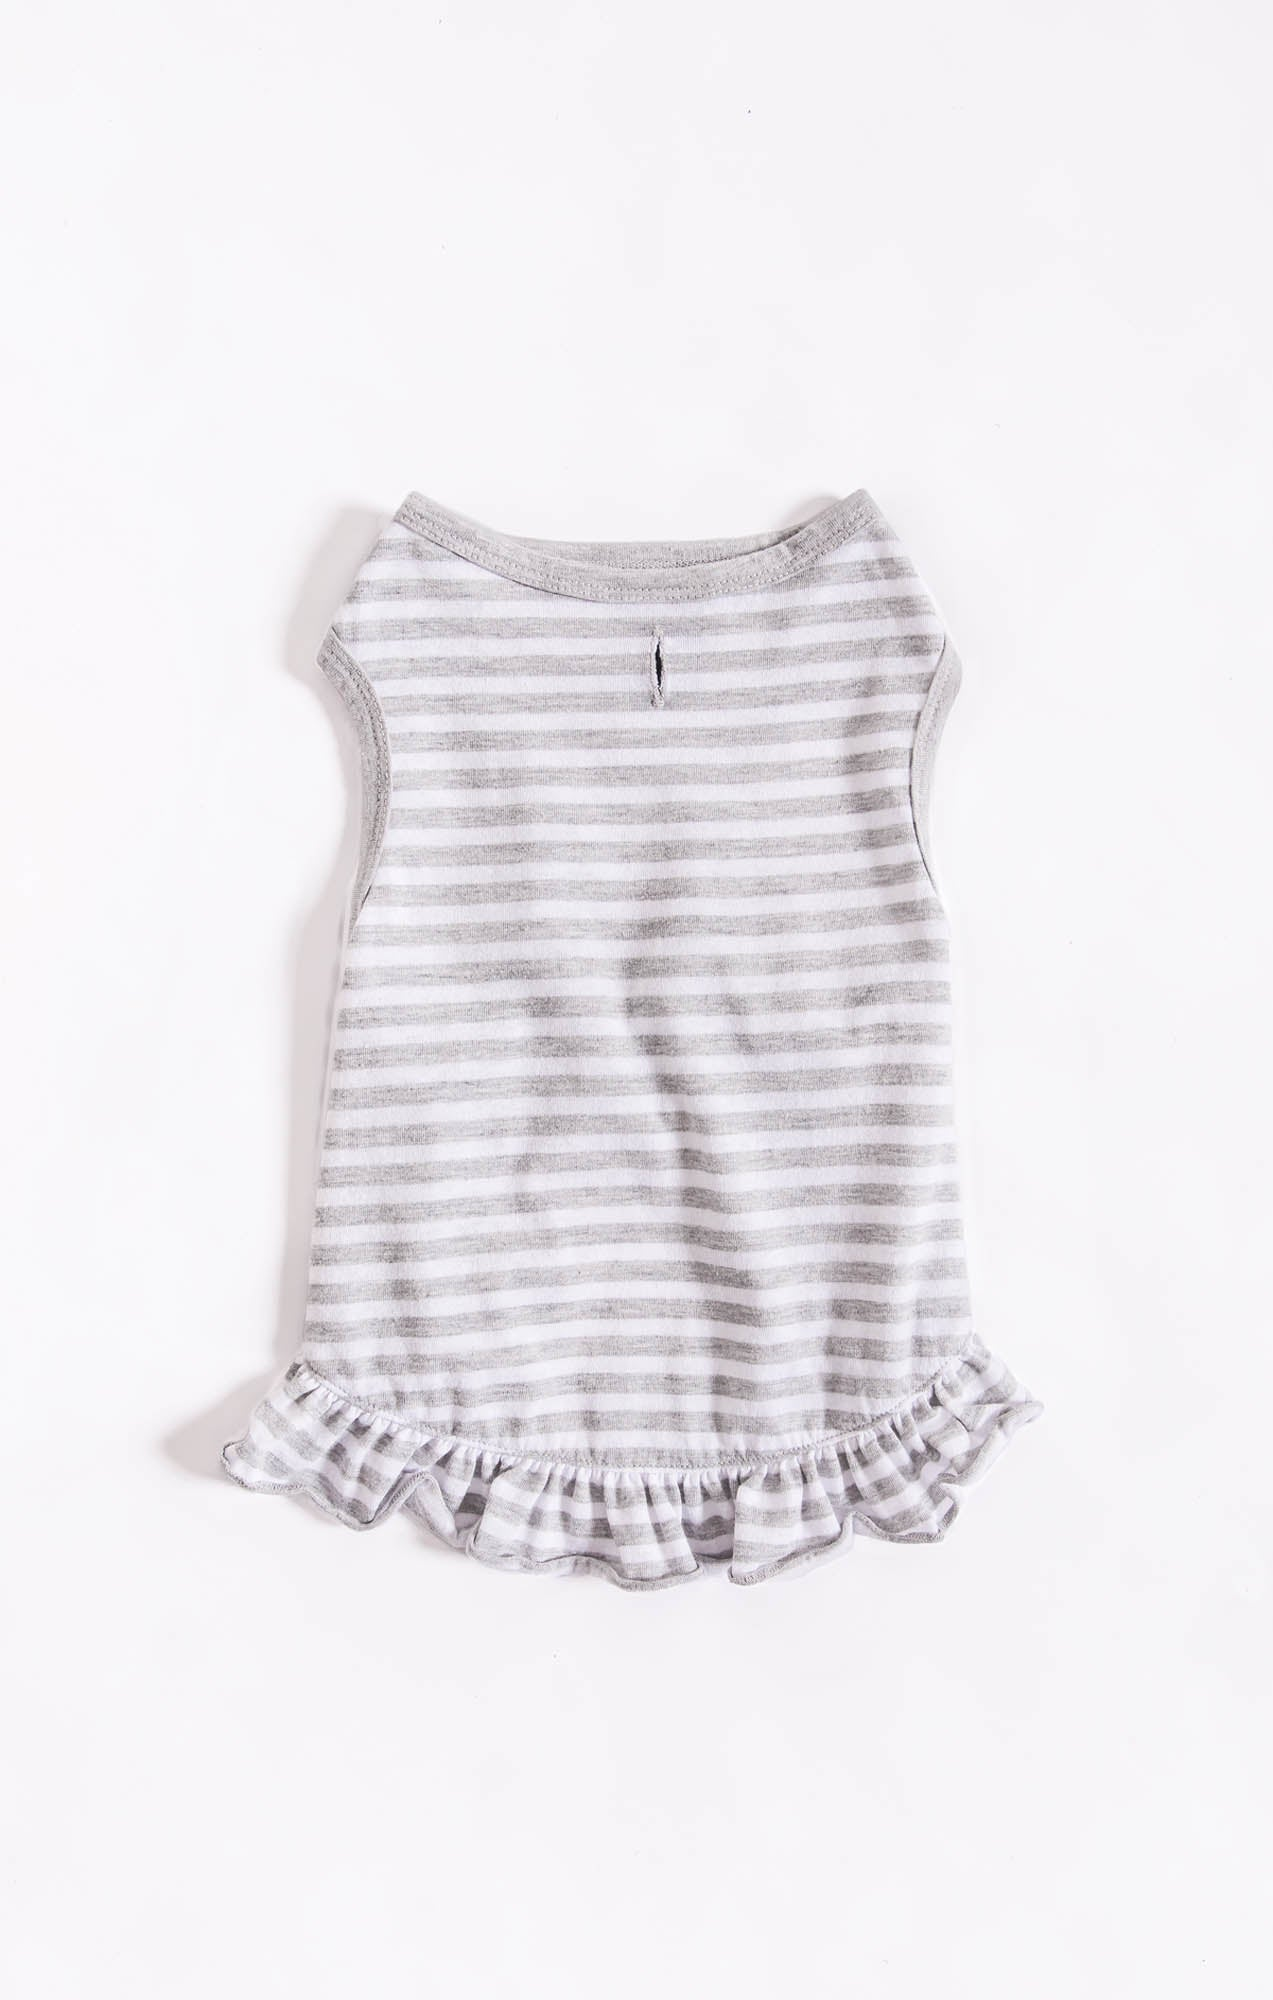 Tops The Striped Ruffle Top by ZOO SUPPLY Heather Grey/White